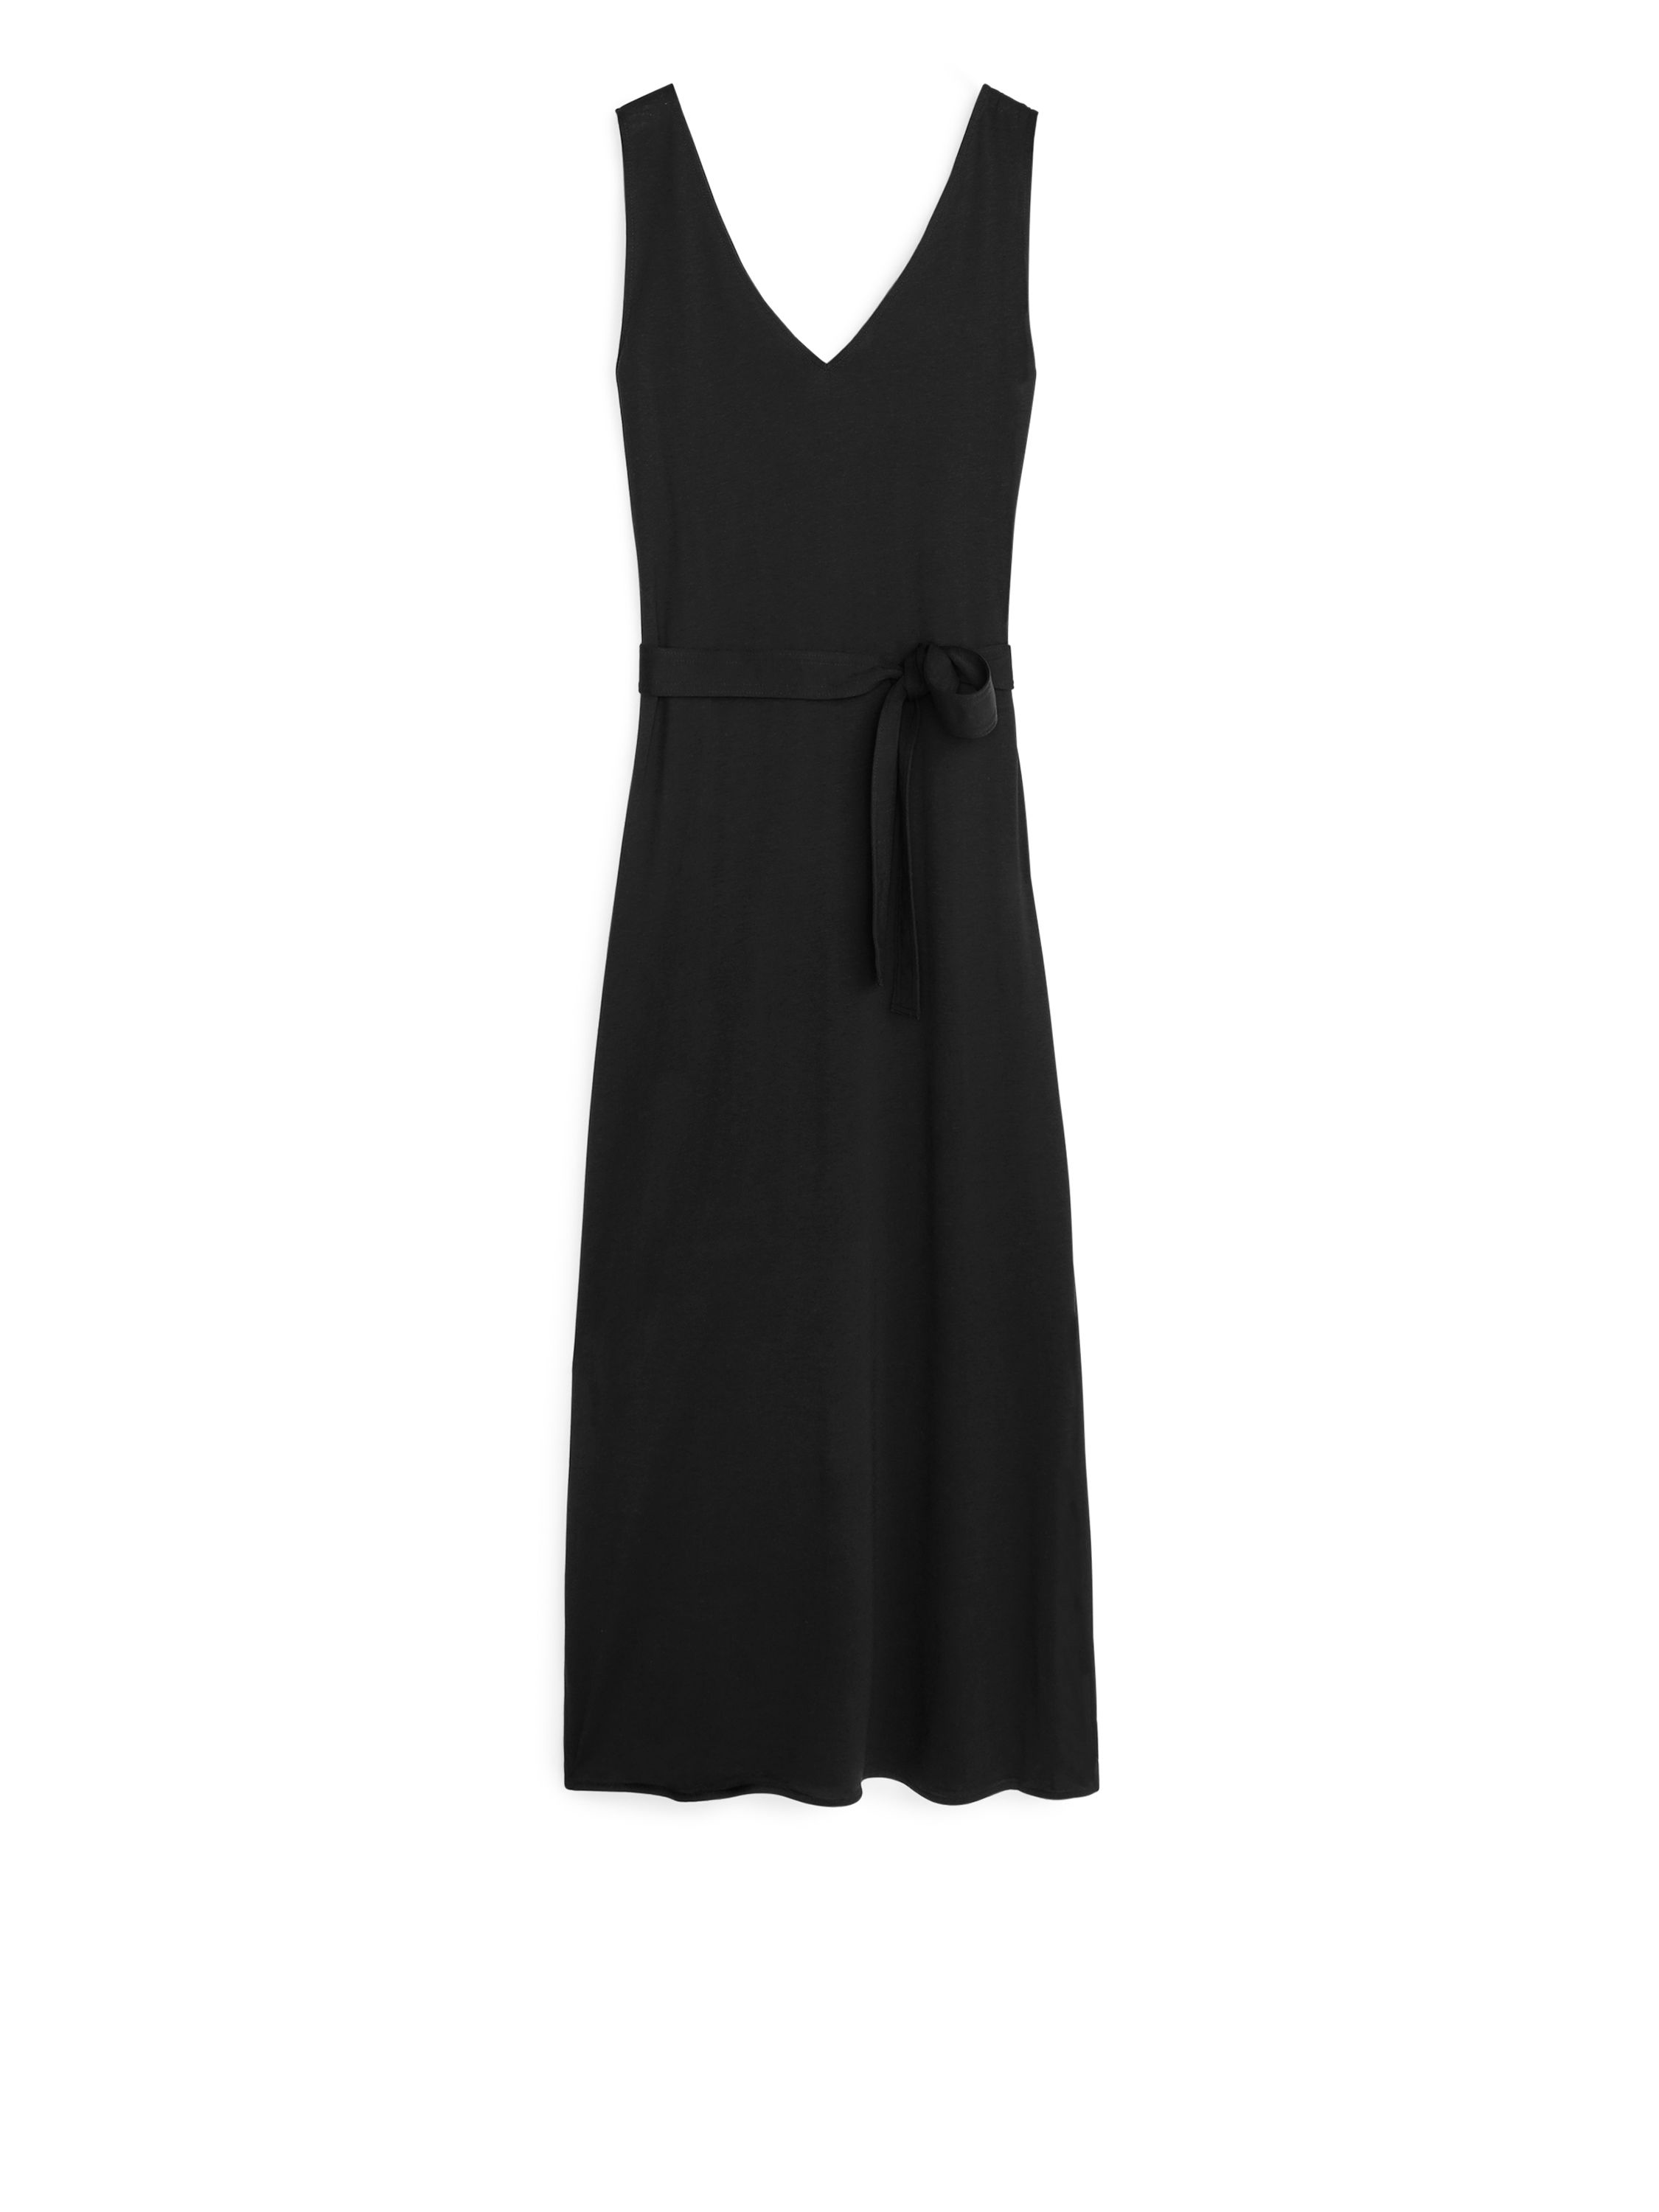 Fabric Swatch image of Arket v-neck jersey dress in black